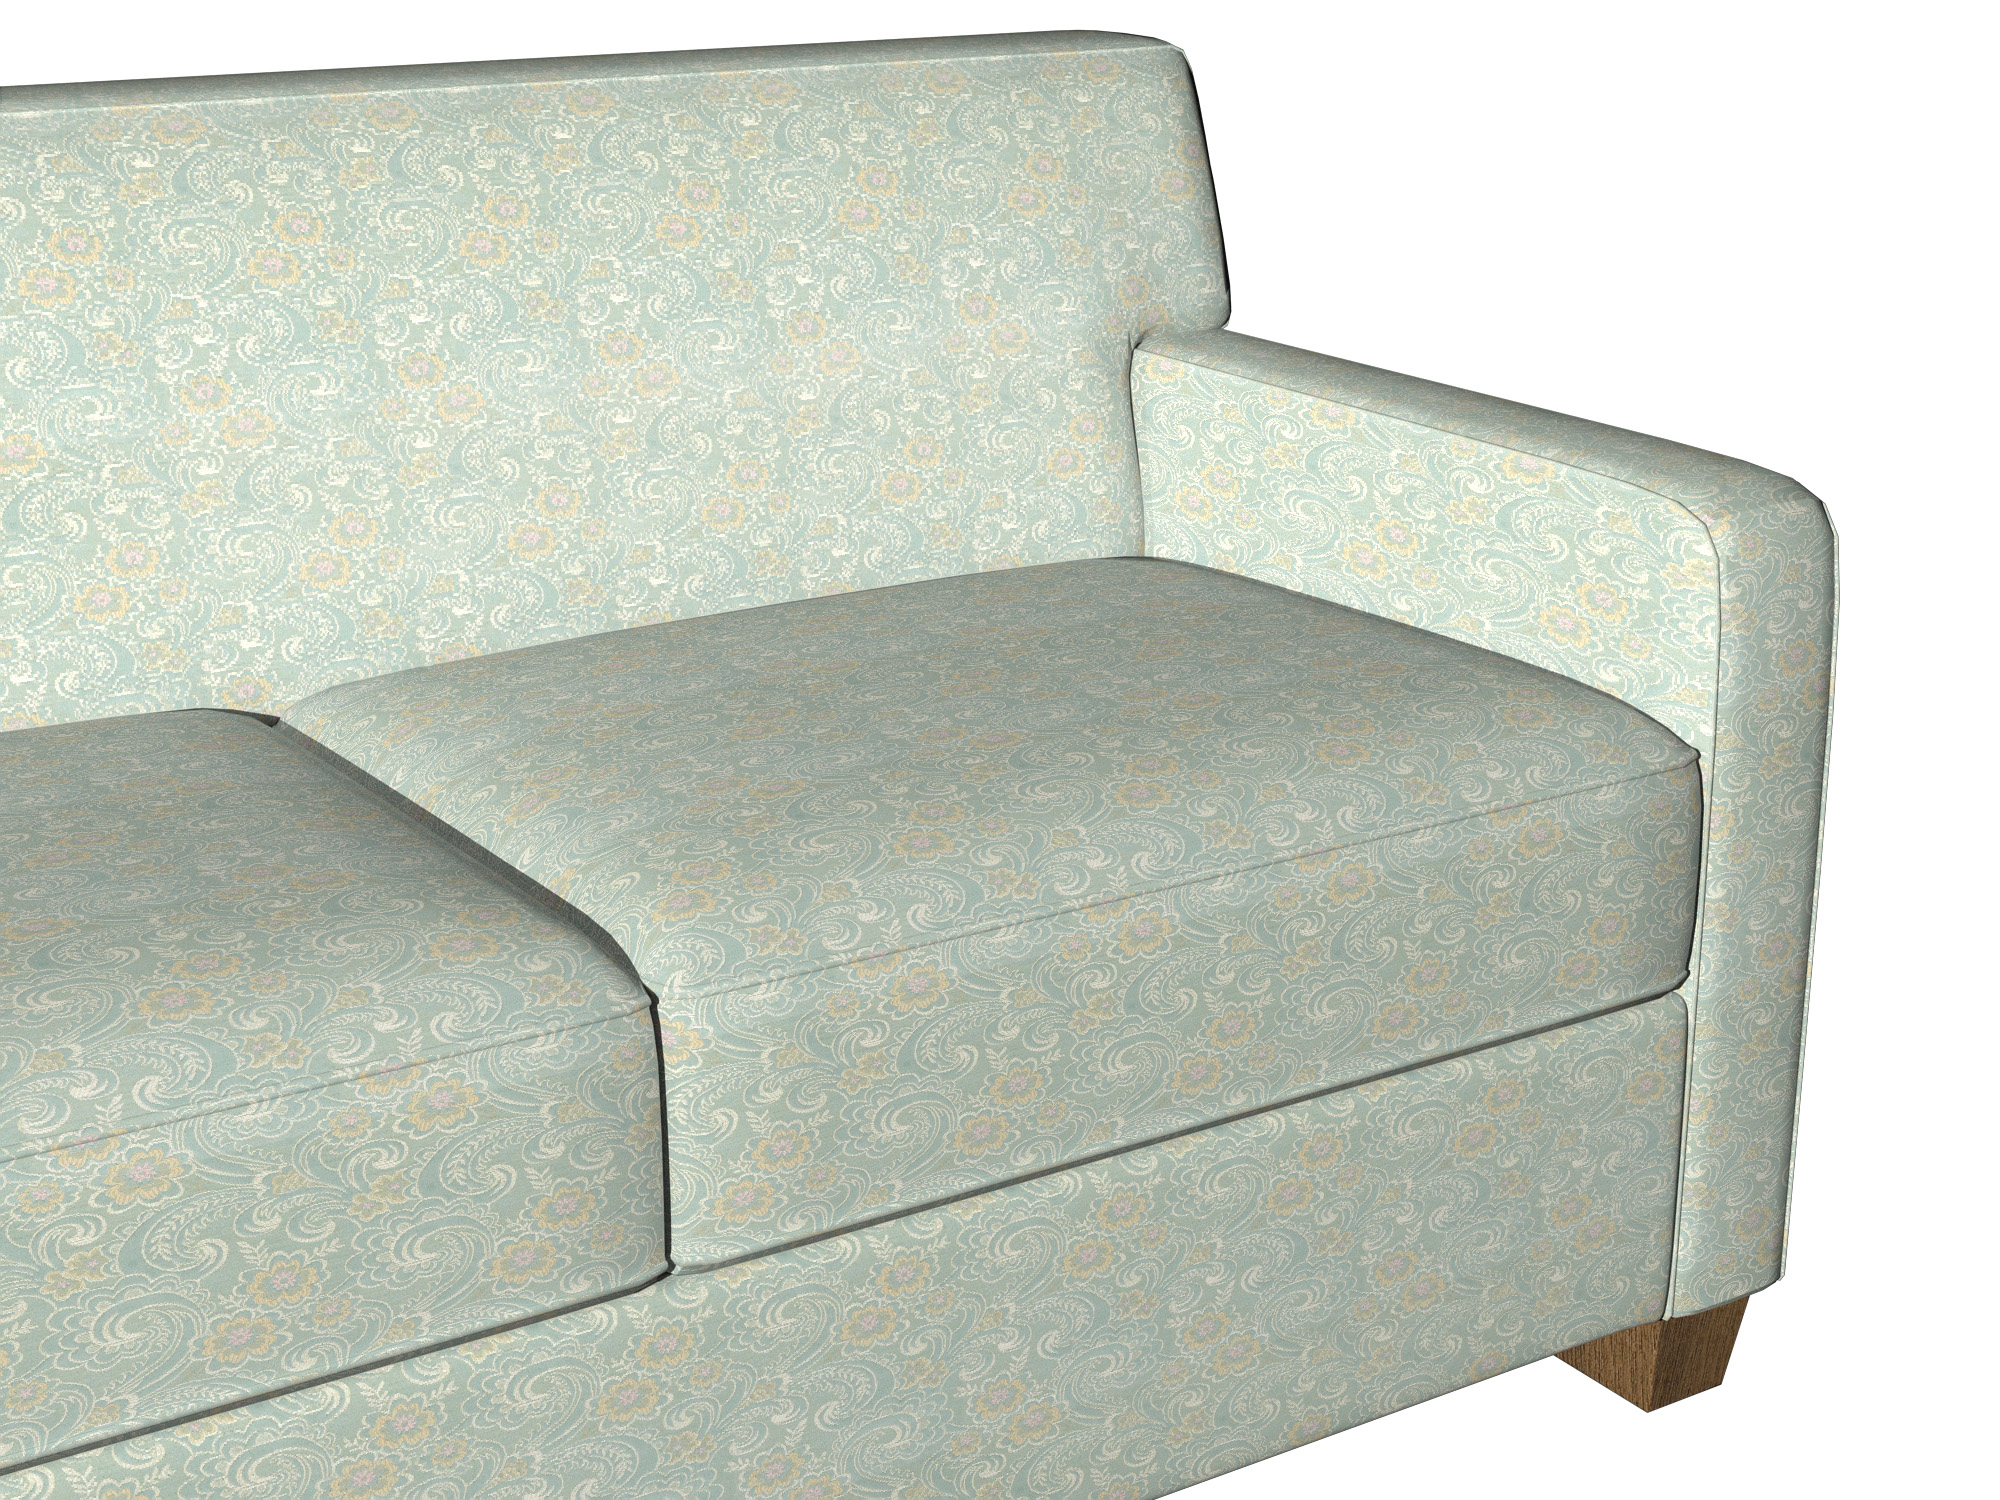 brocade sofa fabric distressed leather bed uk gold pink and blue paisley floral upholstery